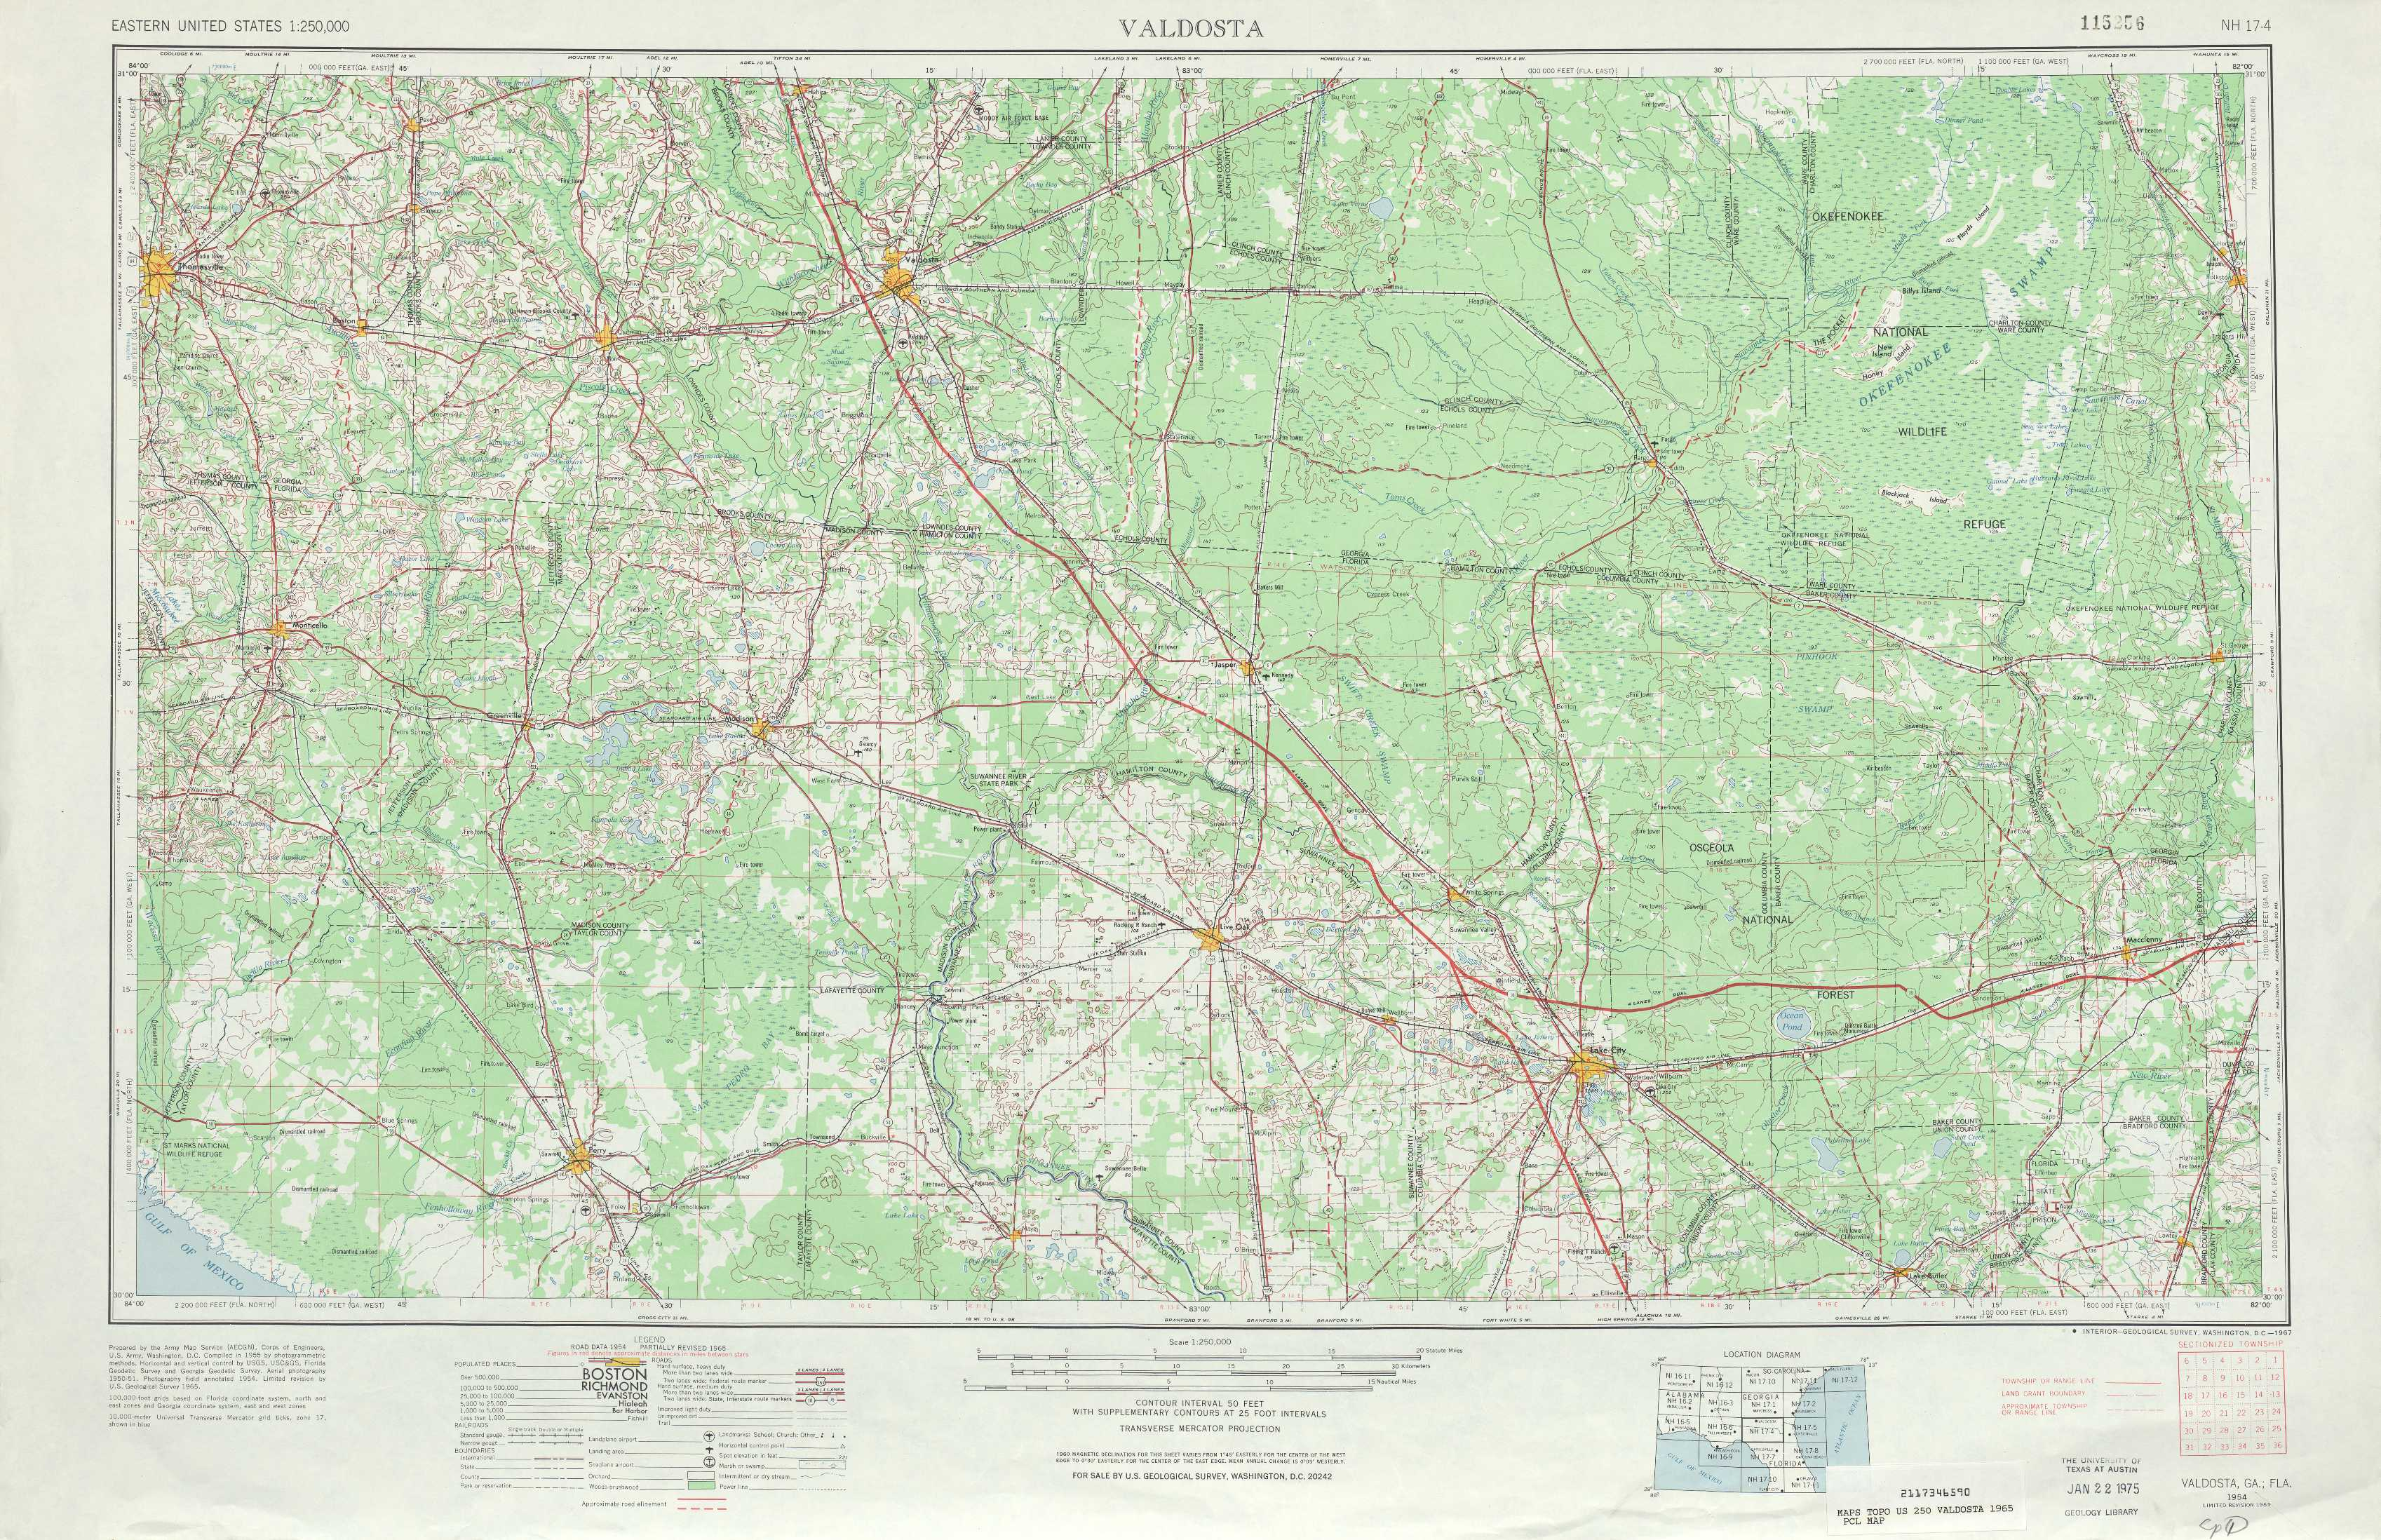 valdosta topographic maps fl ga usgs topo quad a1 at 1